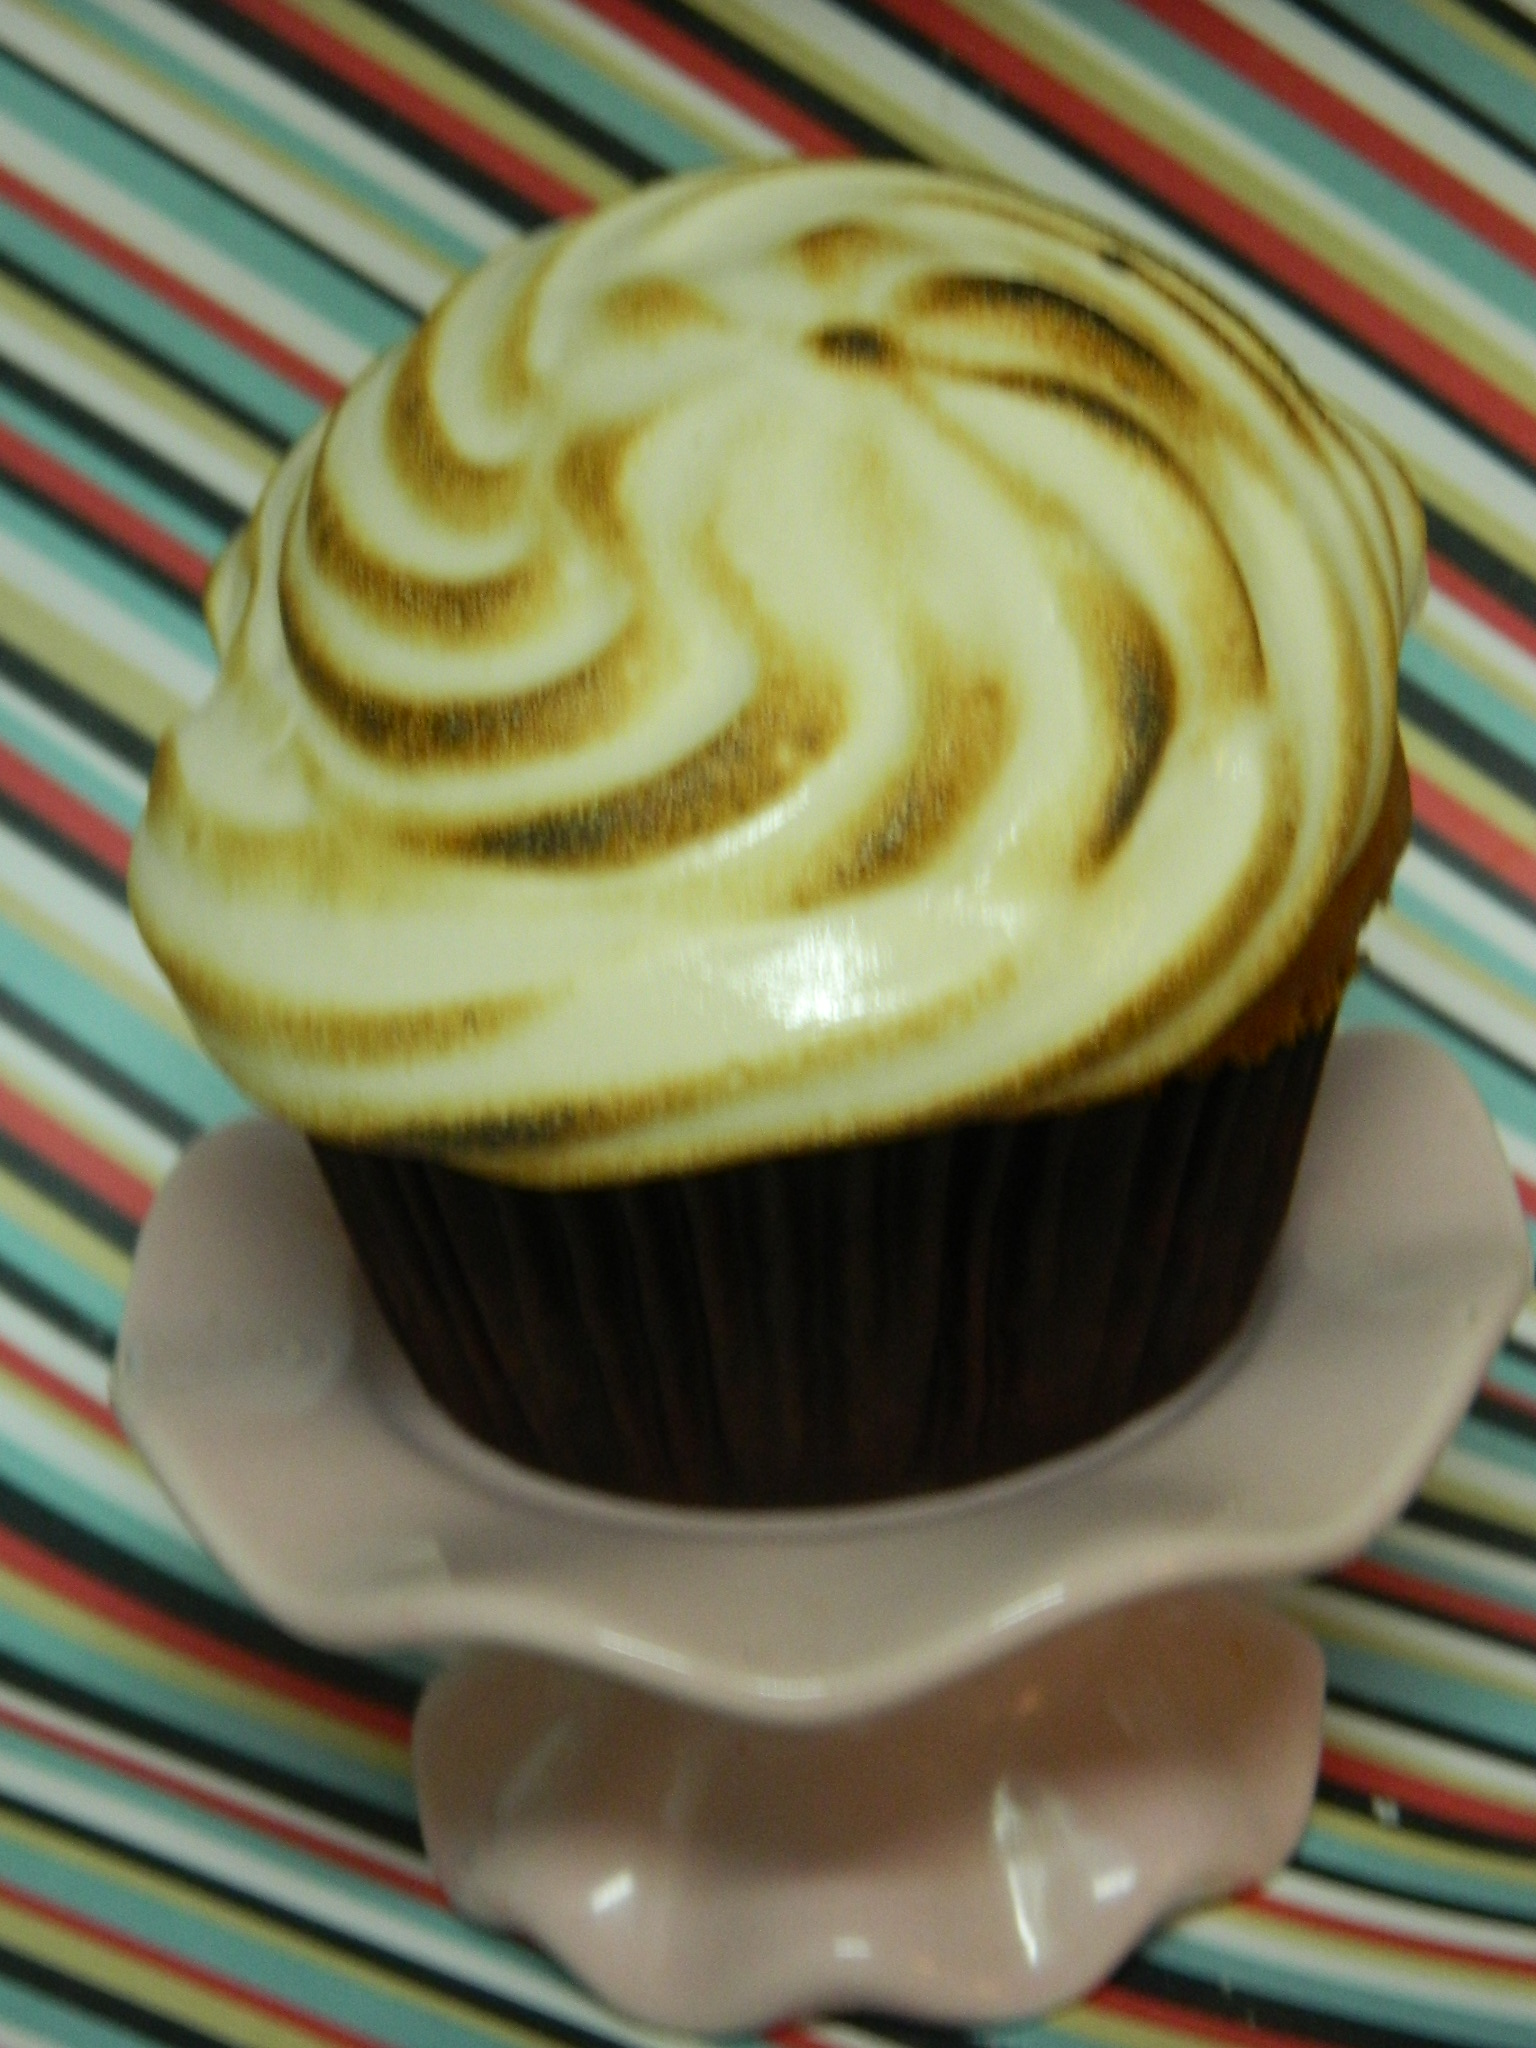 Fluffernutter-Banana cupcake with peanut butter cream filling and marshmallow cream topping